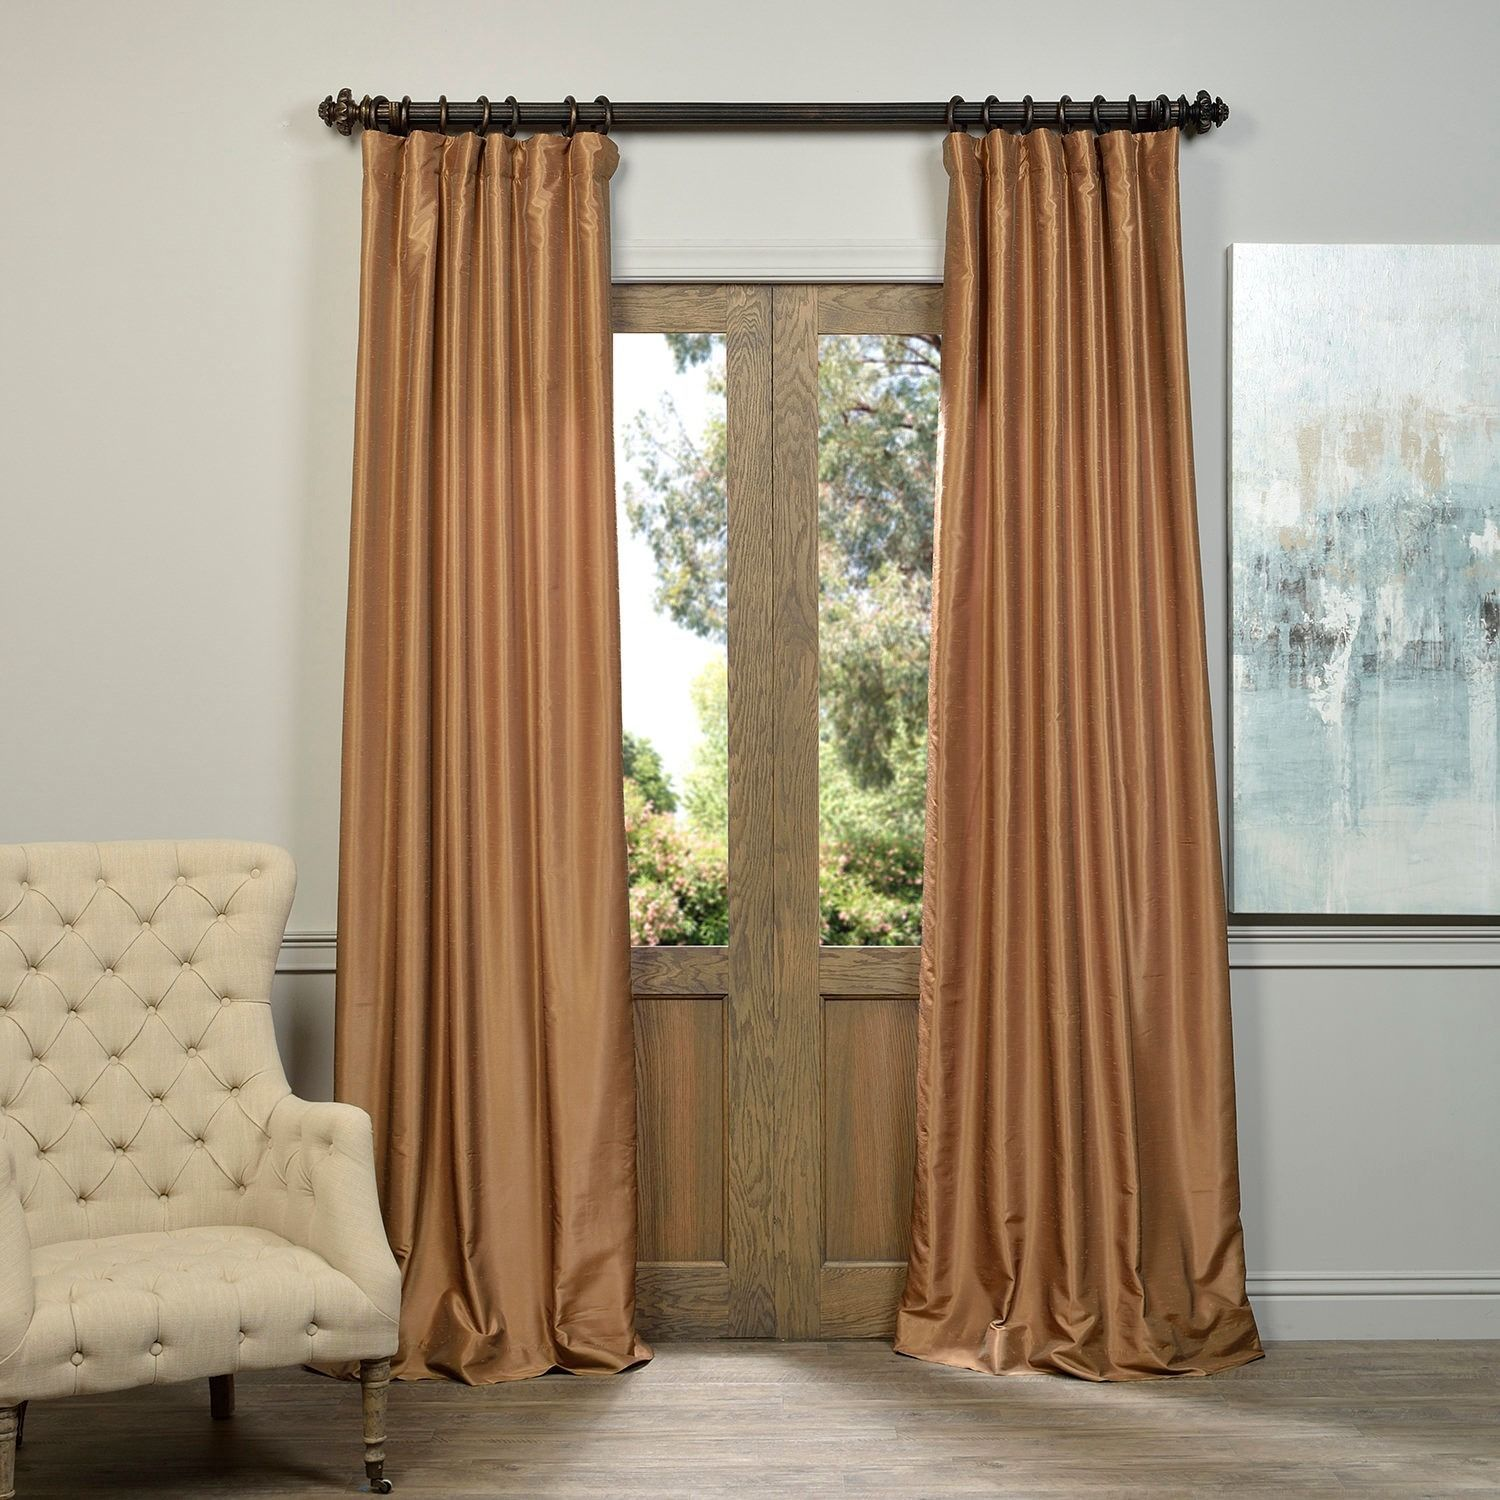 enjoyable applied in design to curtains silk your drapes tips residence white taffeta faux buy